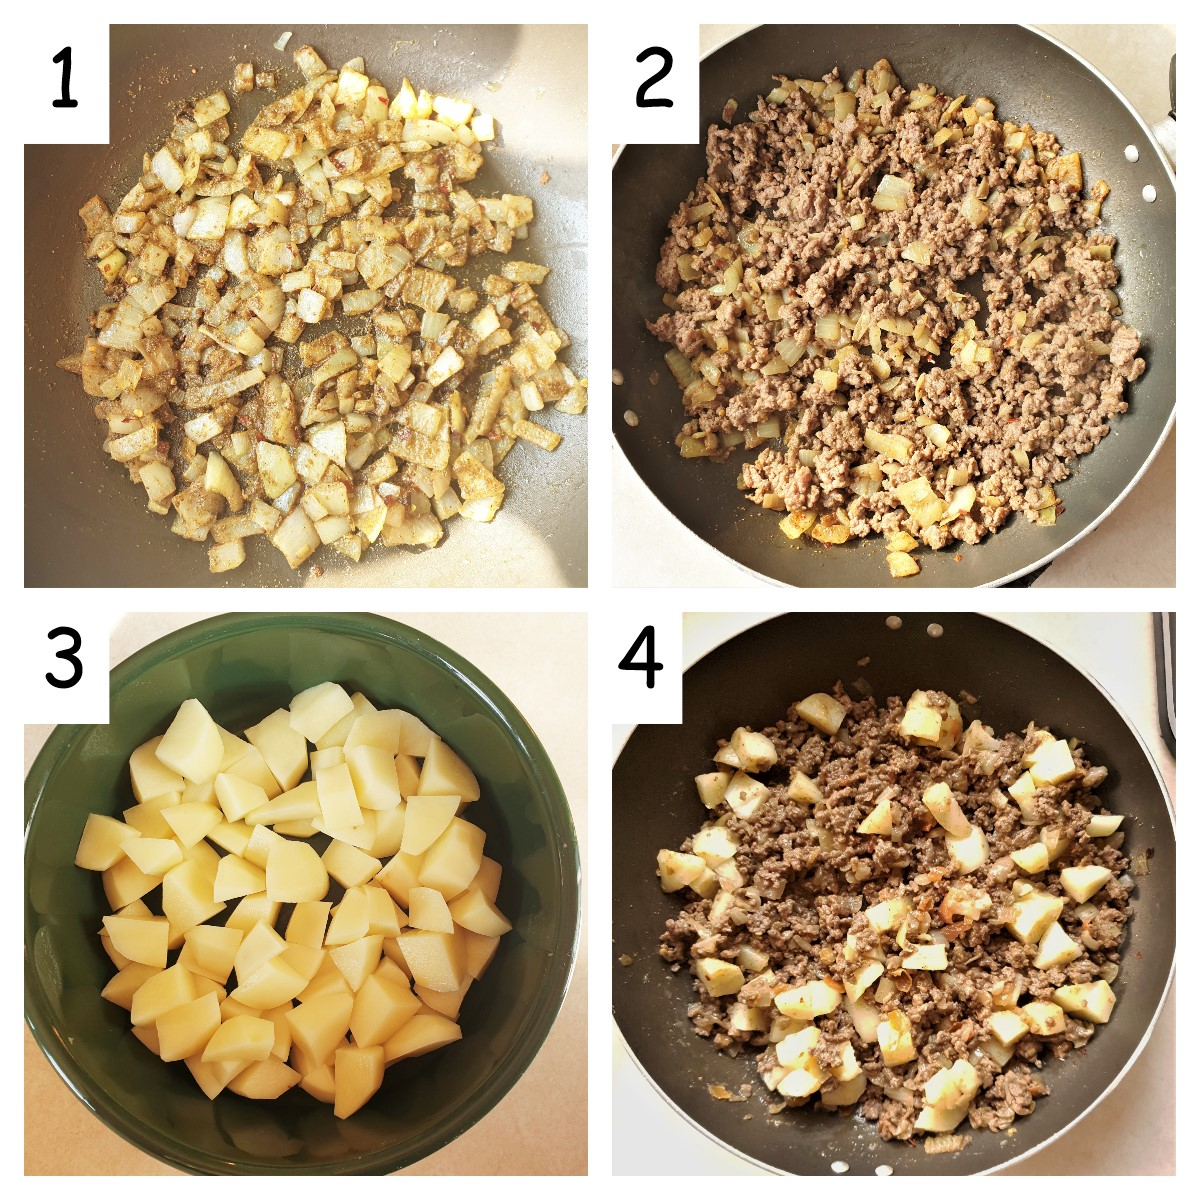 Collage of 4 images showing how to make the filling for beef samosas.